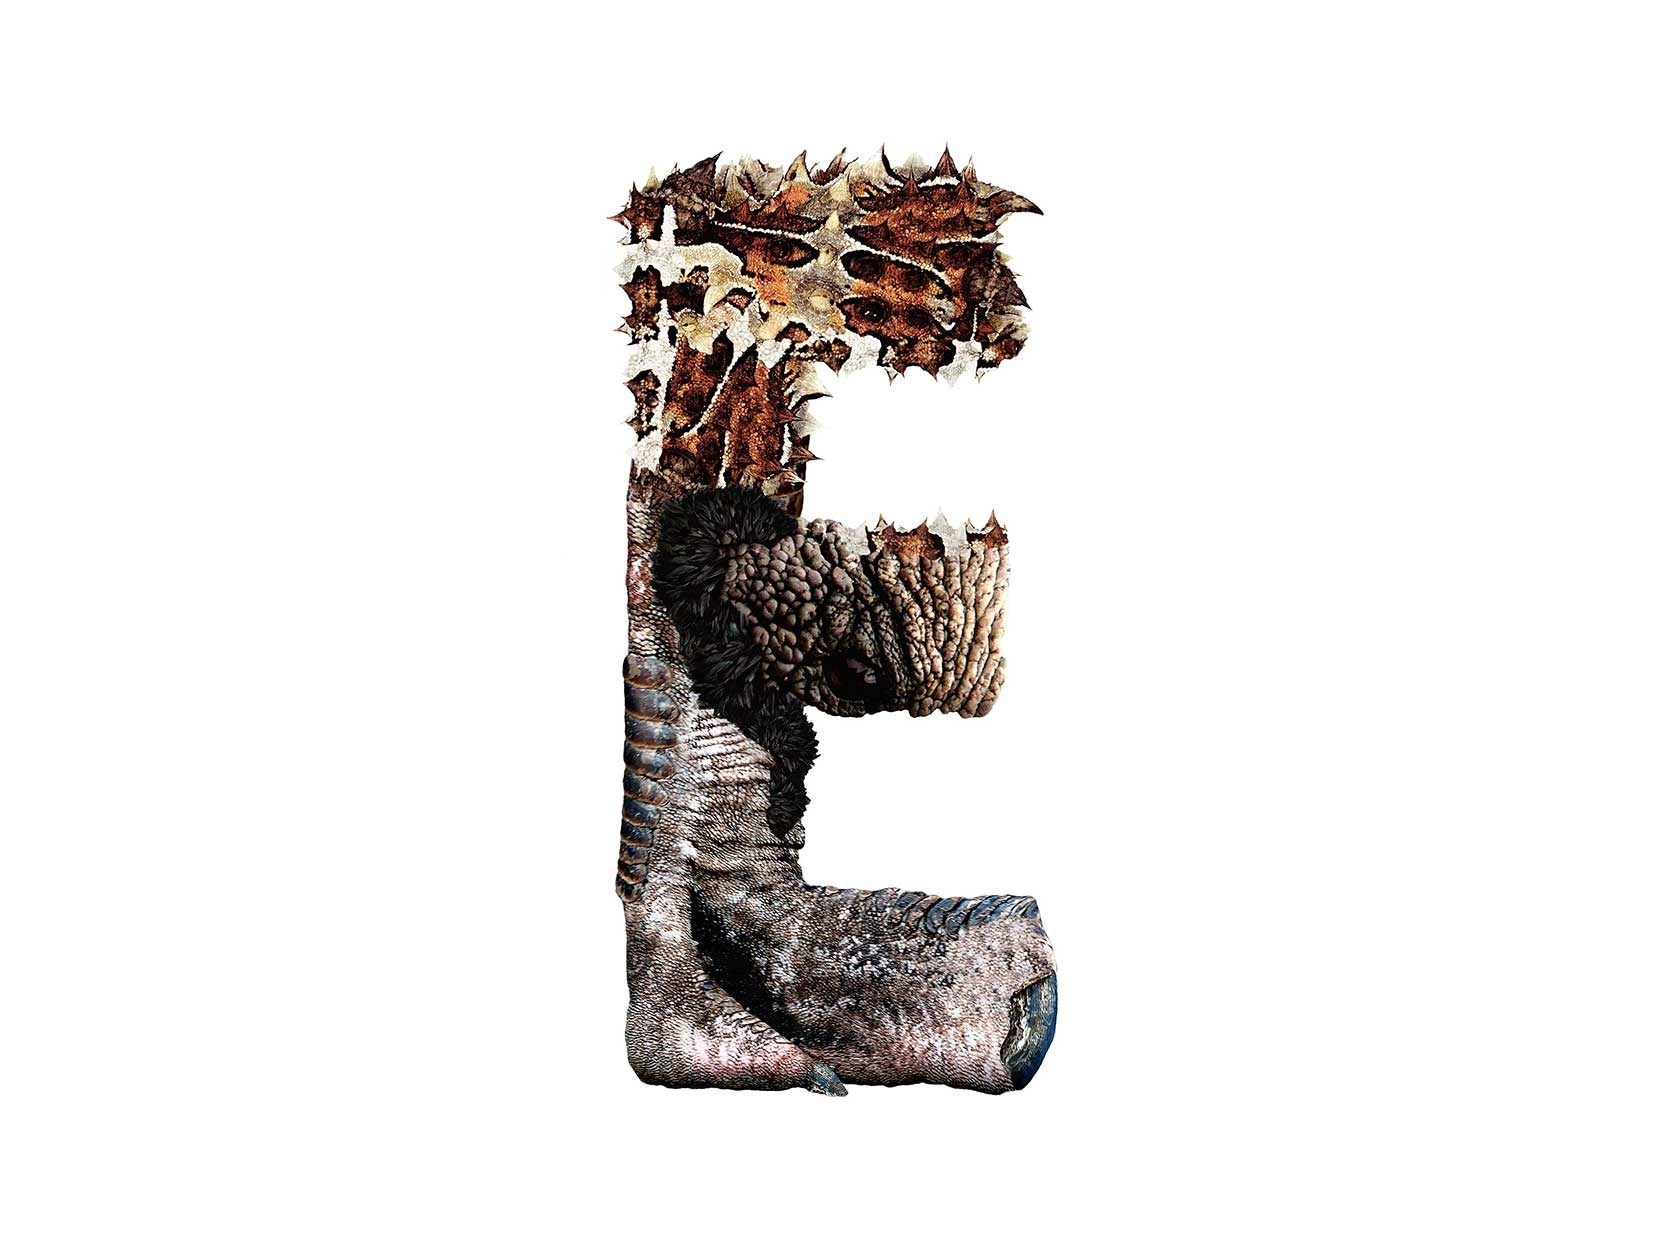 Bird Headed Monster Letter E3 Design by Furia